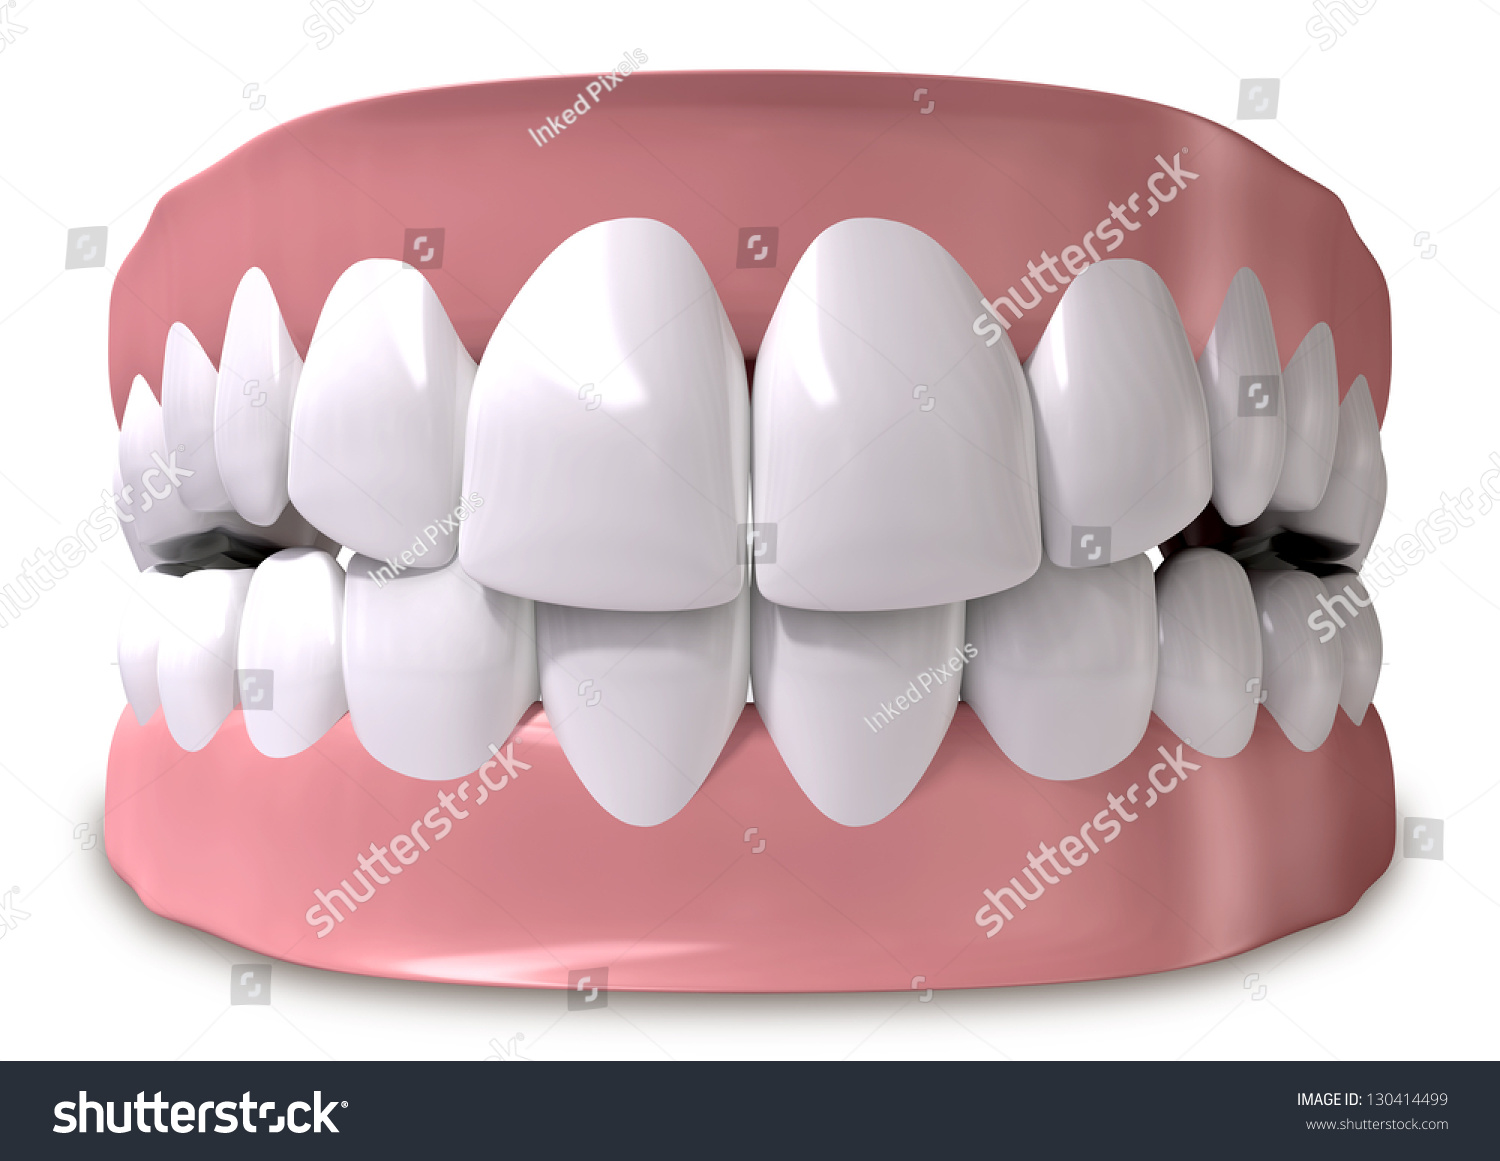 Luxury Pictures Of Human Teeth Pattern - Anatomy Ideas - yunoki.info